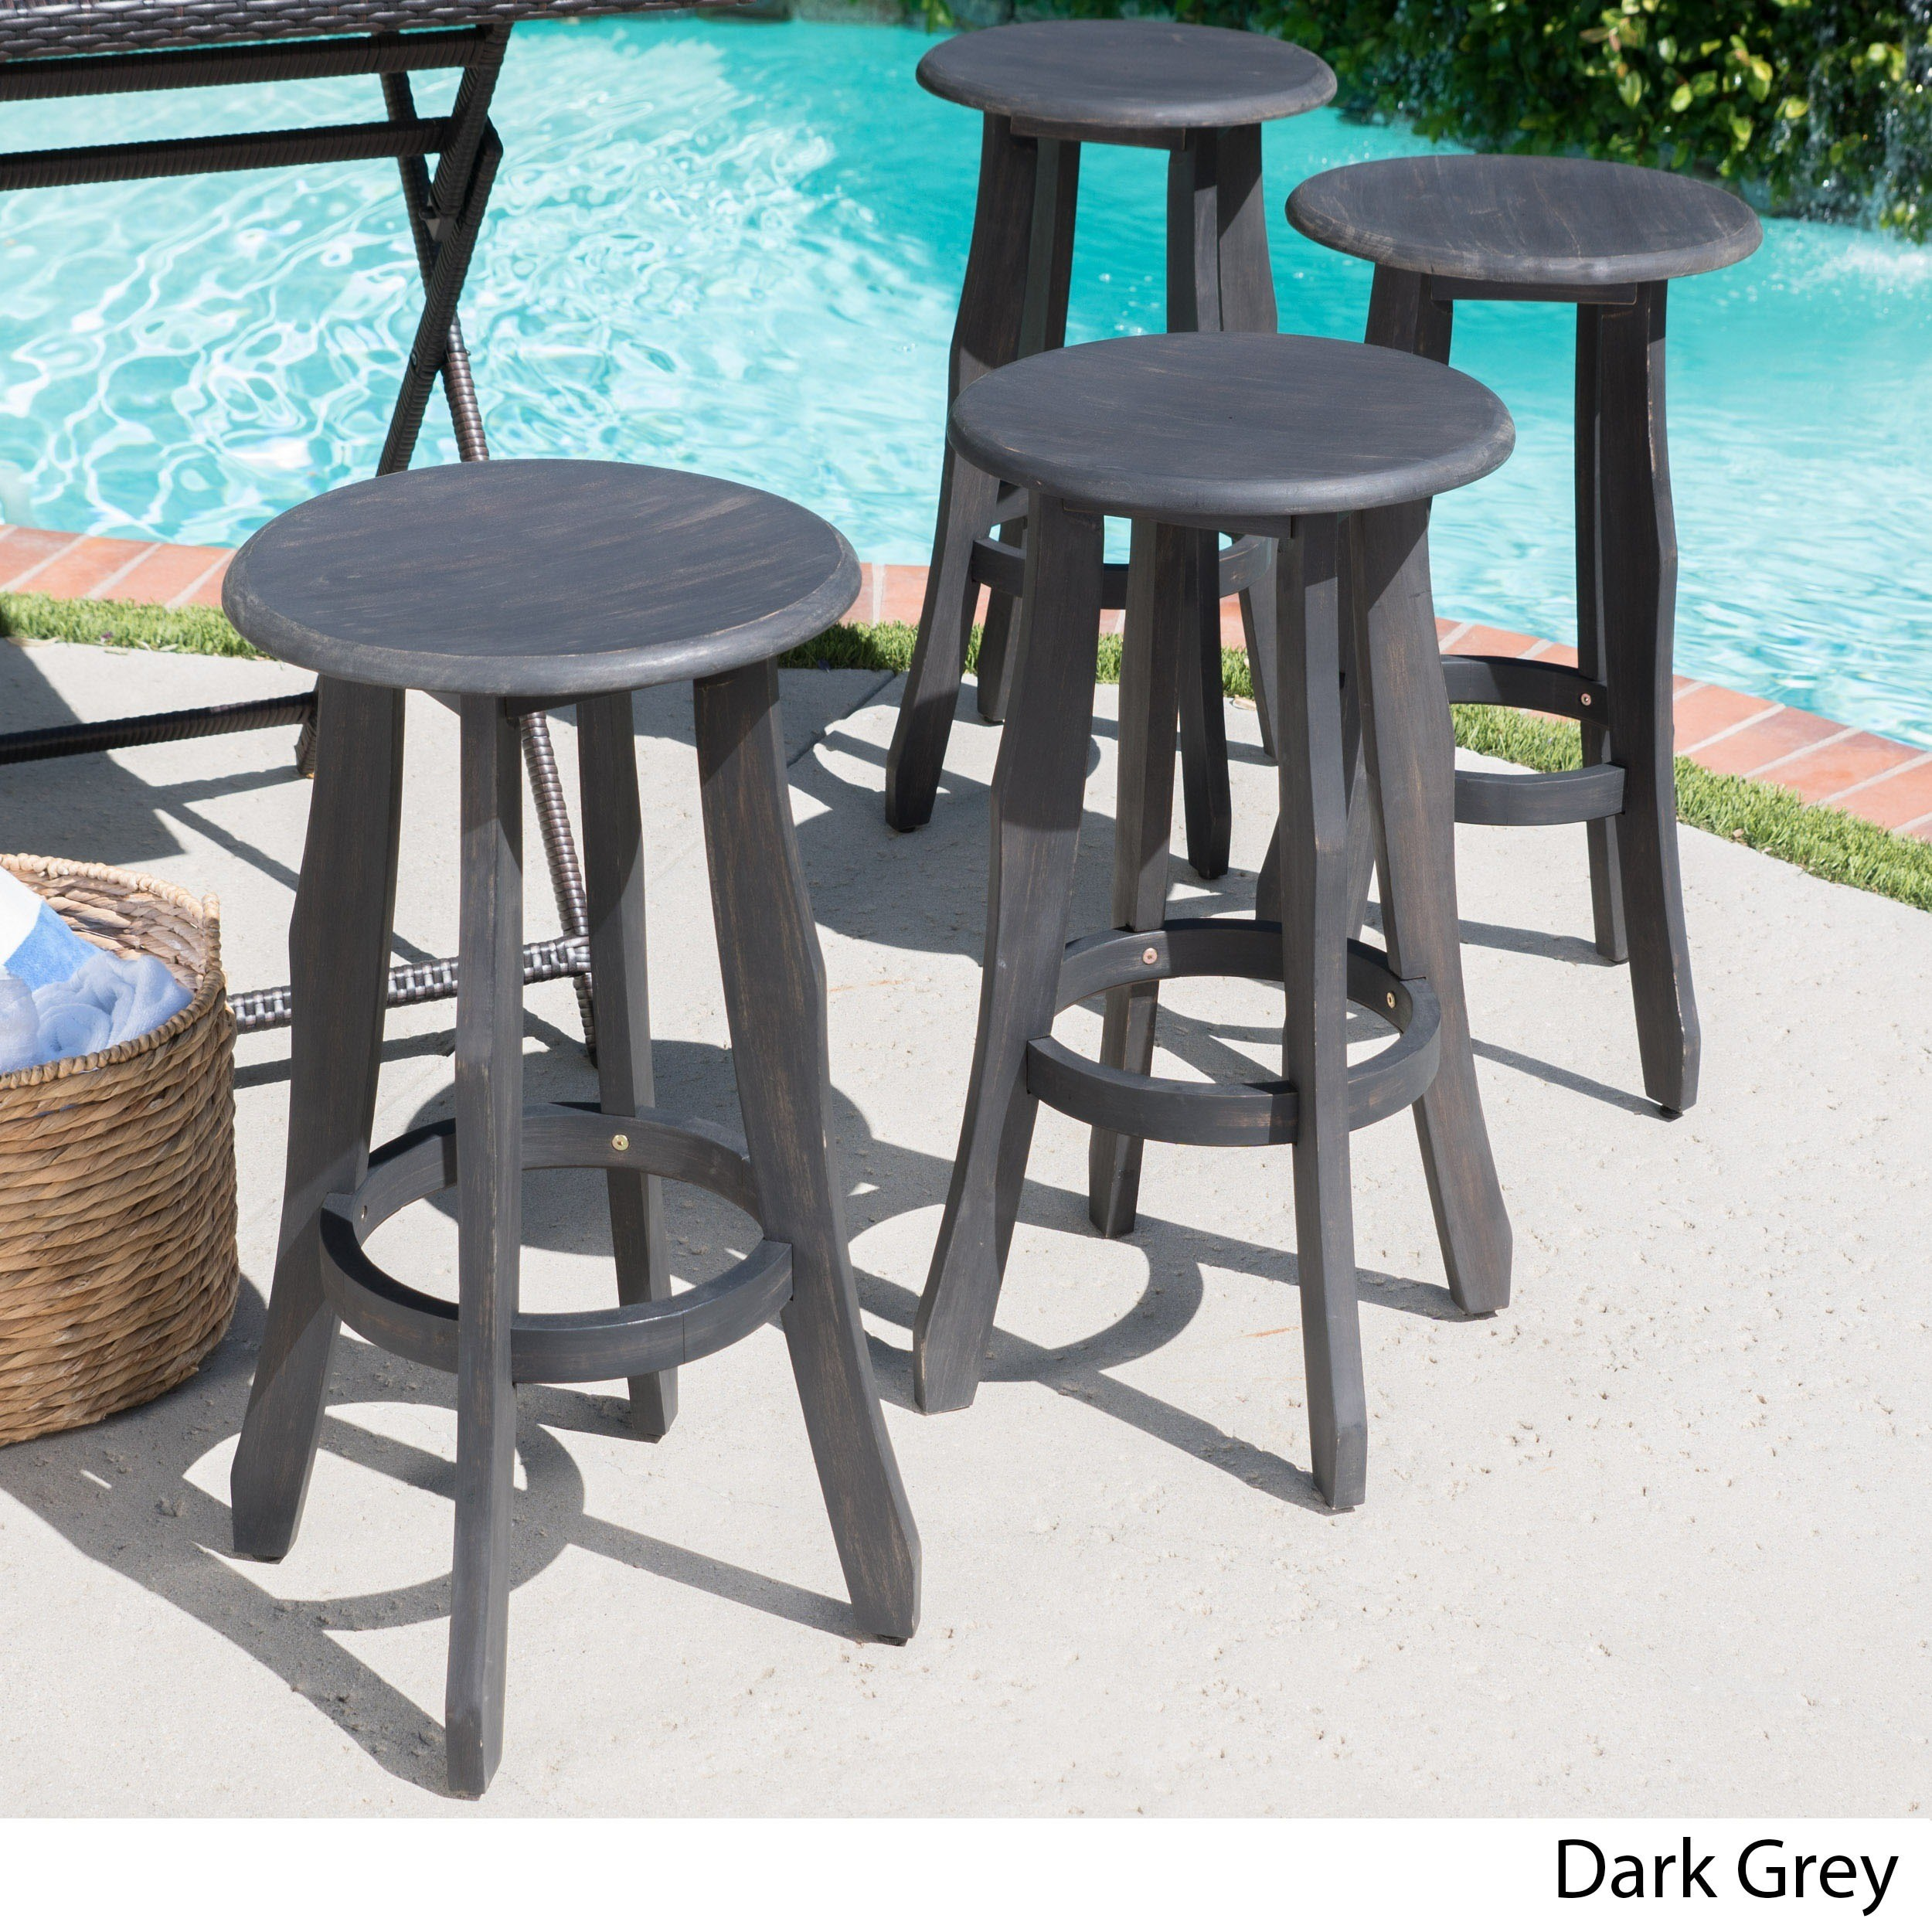 Christopher Knight Home Pike Outdoor Acacia Wood Barstool (Set of 4) by  Dark Grey